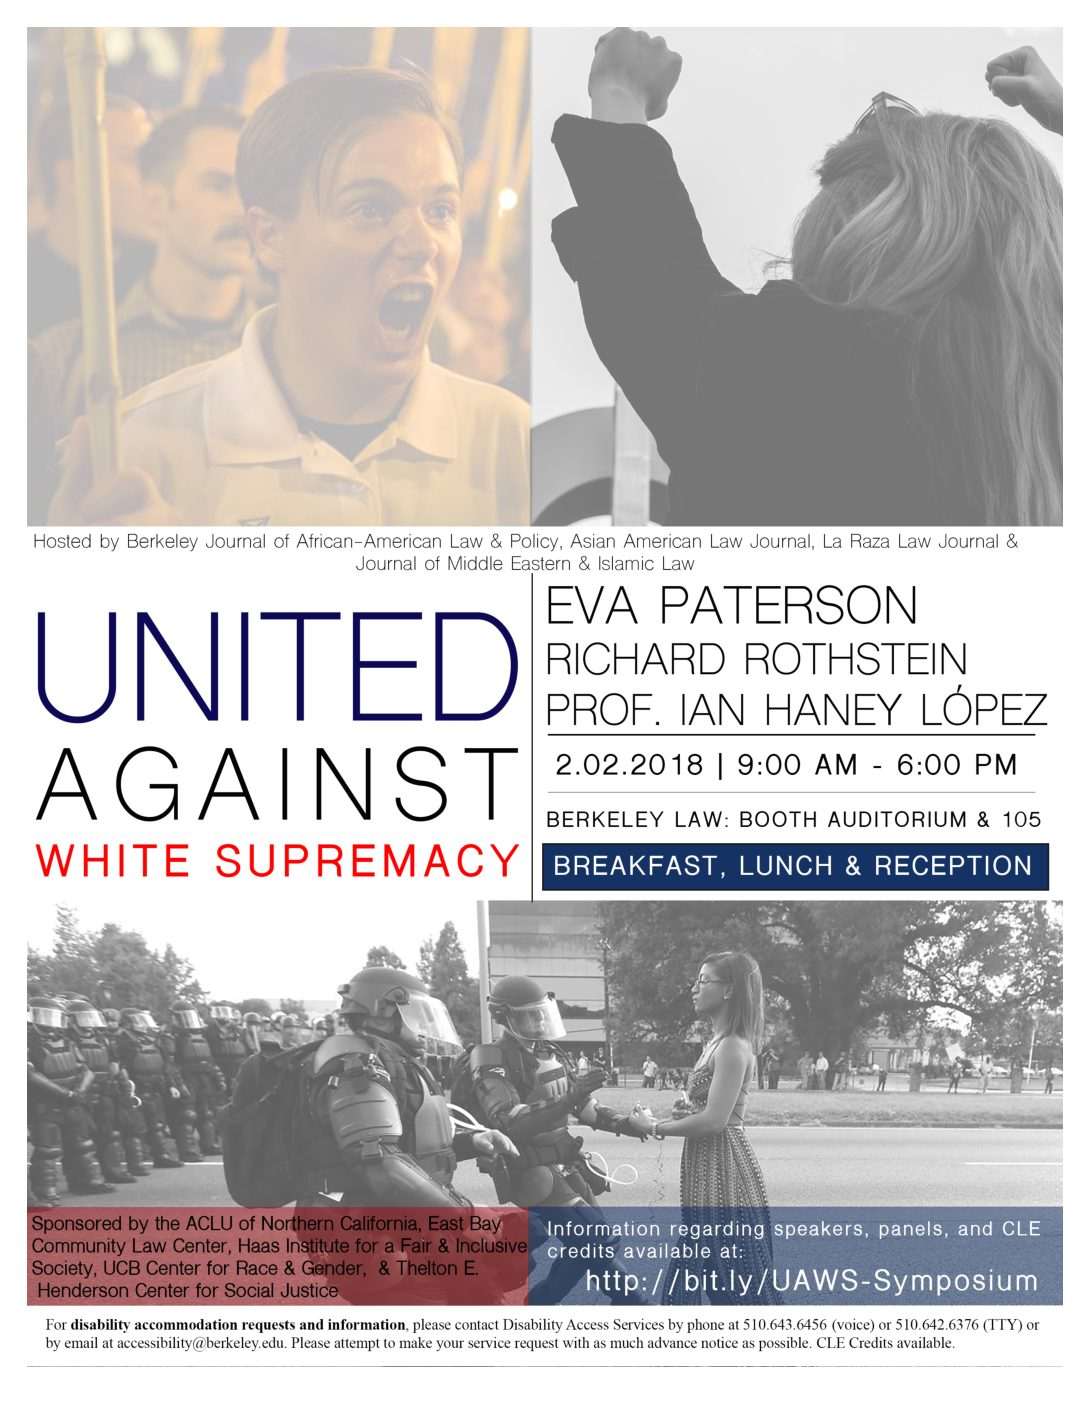 United Against White Supremacy